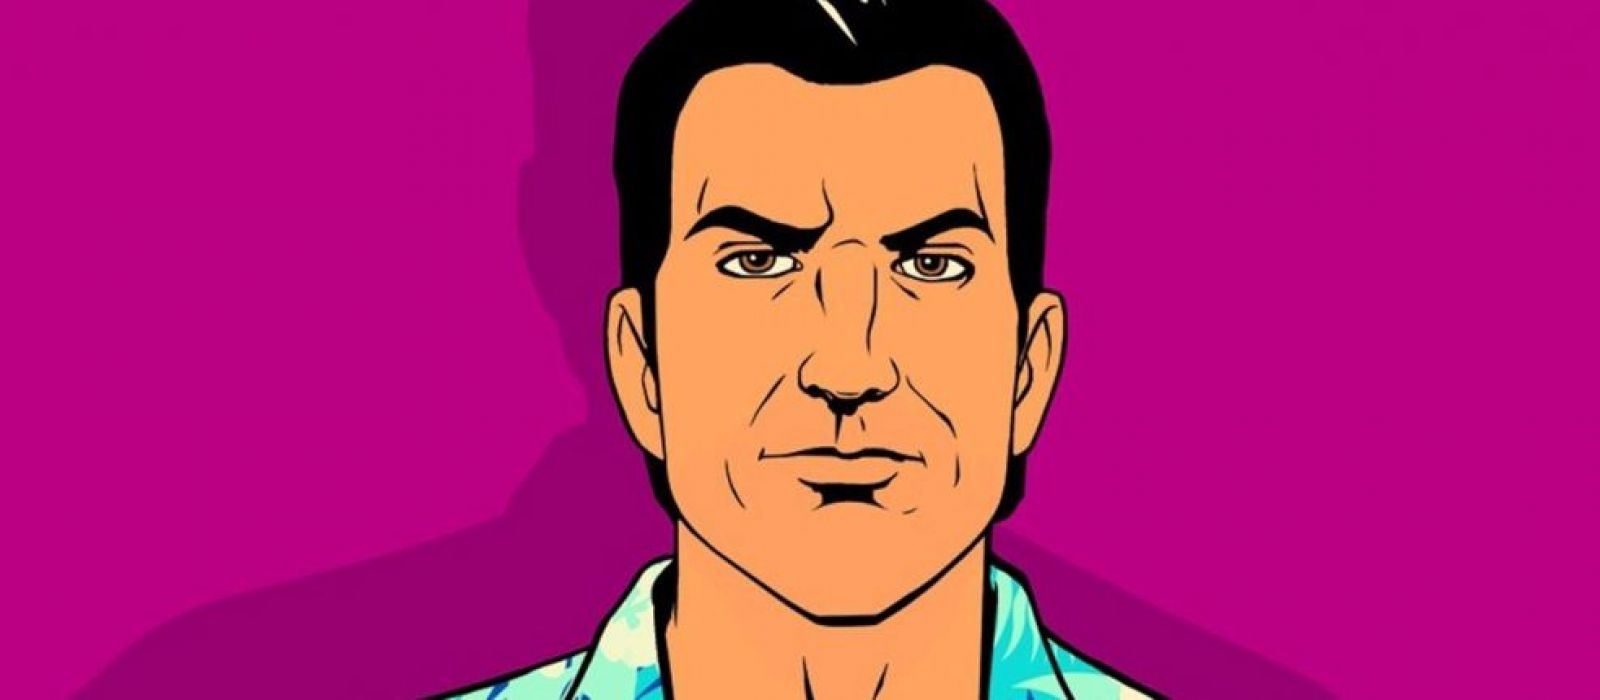 GTA Vice City запустили на отечественном процессоре Эльбрус-4С